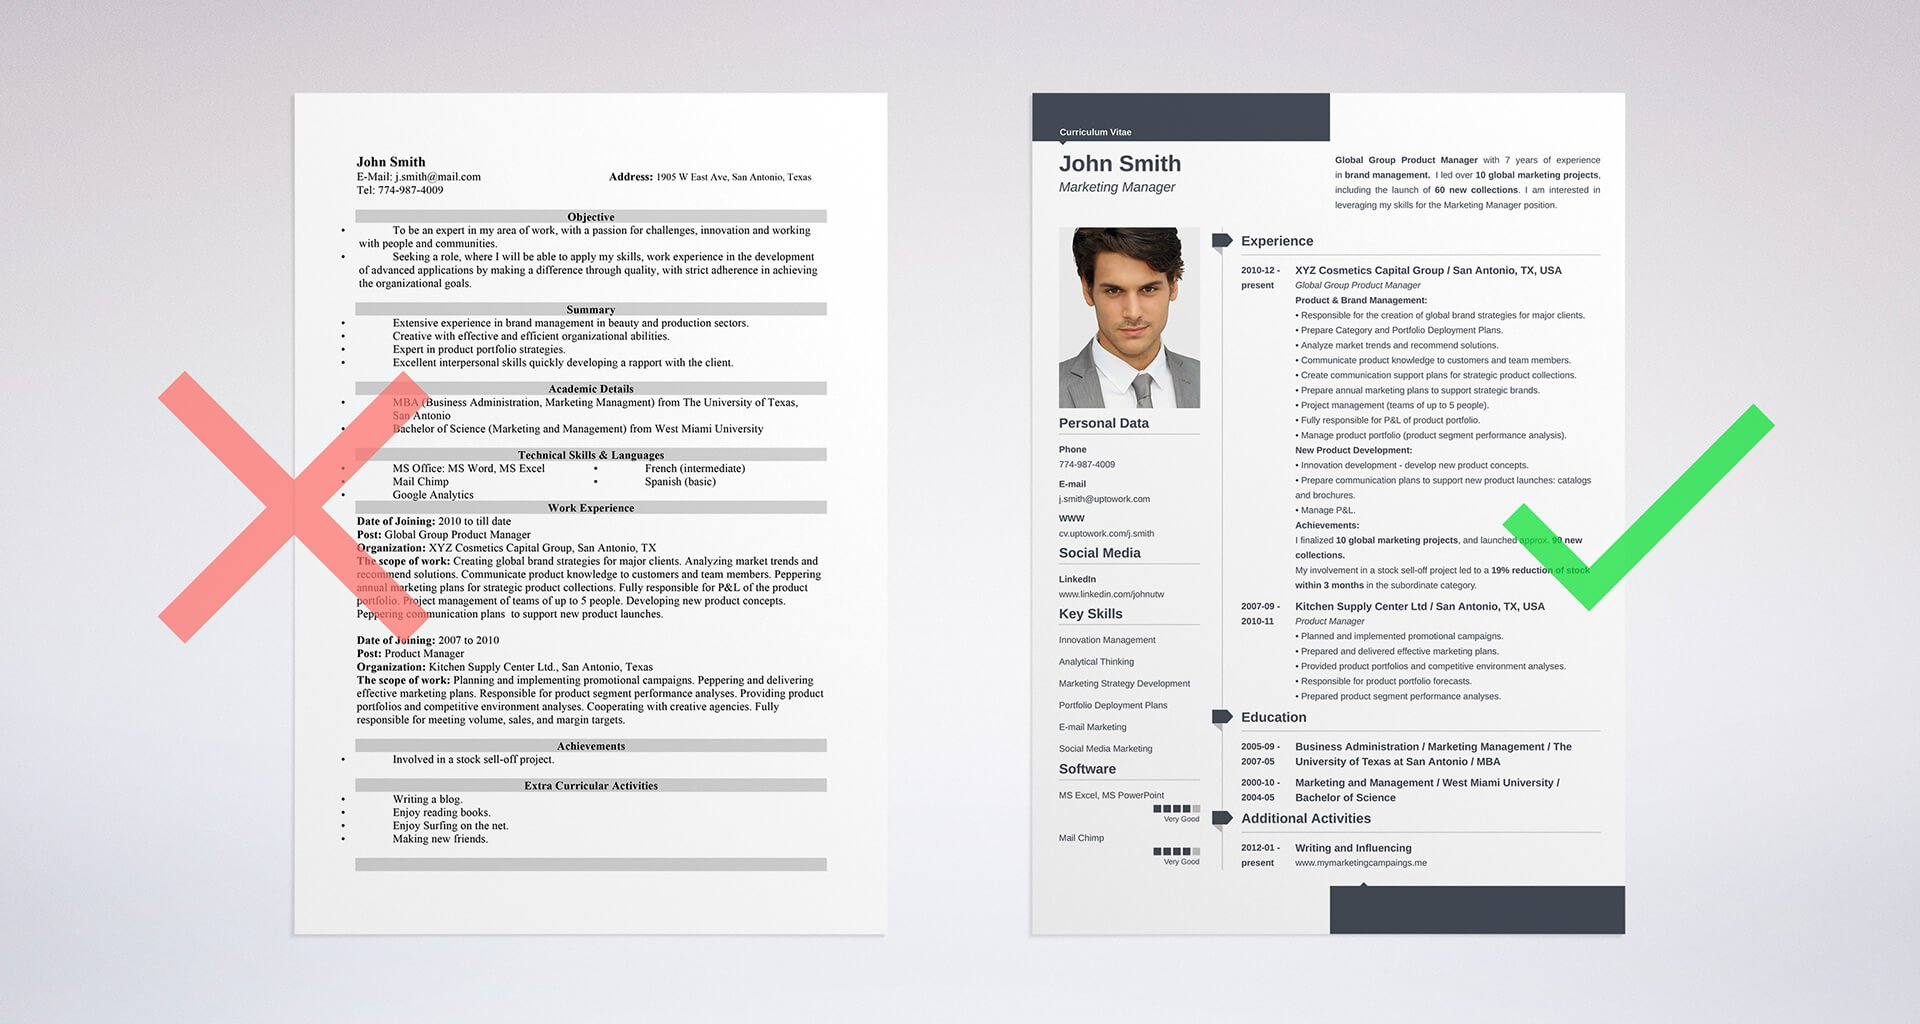 skills for resume best of examples all jobs good qualifications job clean simple format Resume Good Qualifications For A Job Resume